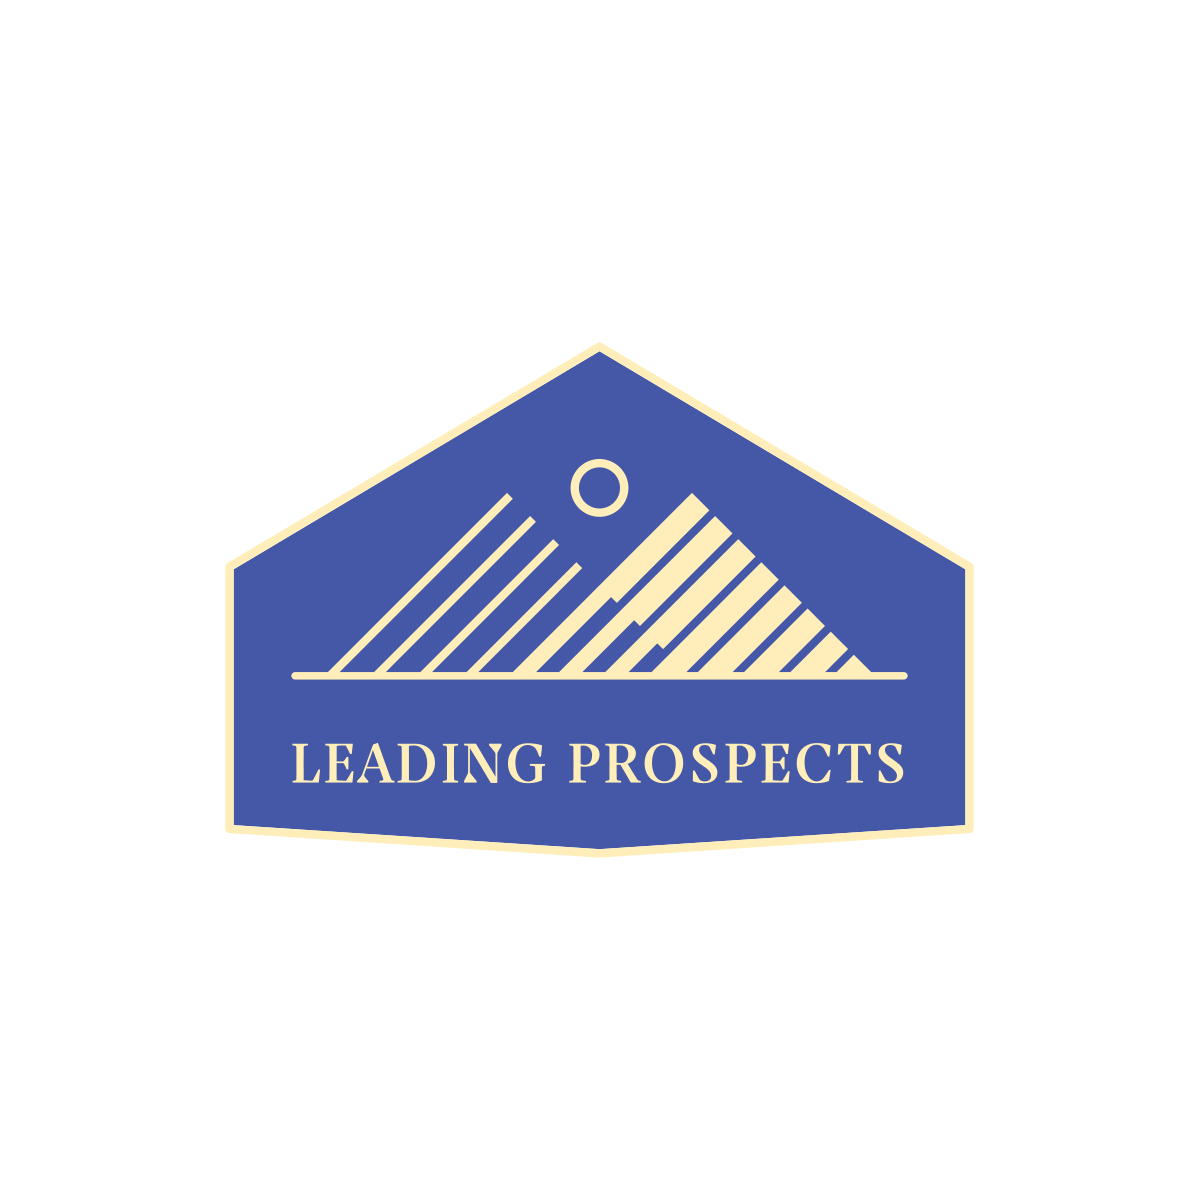 leading prospects